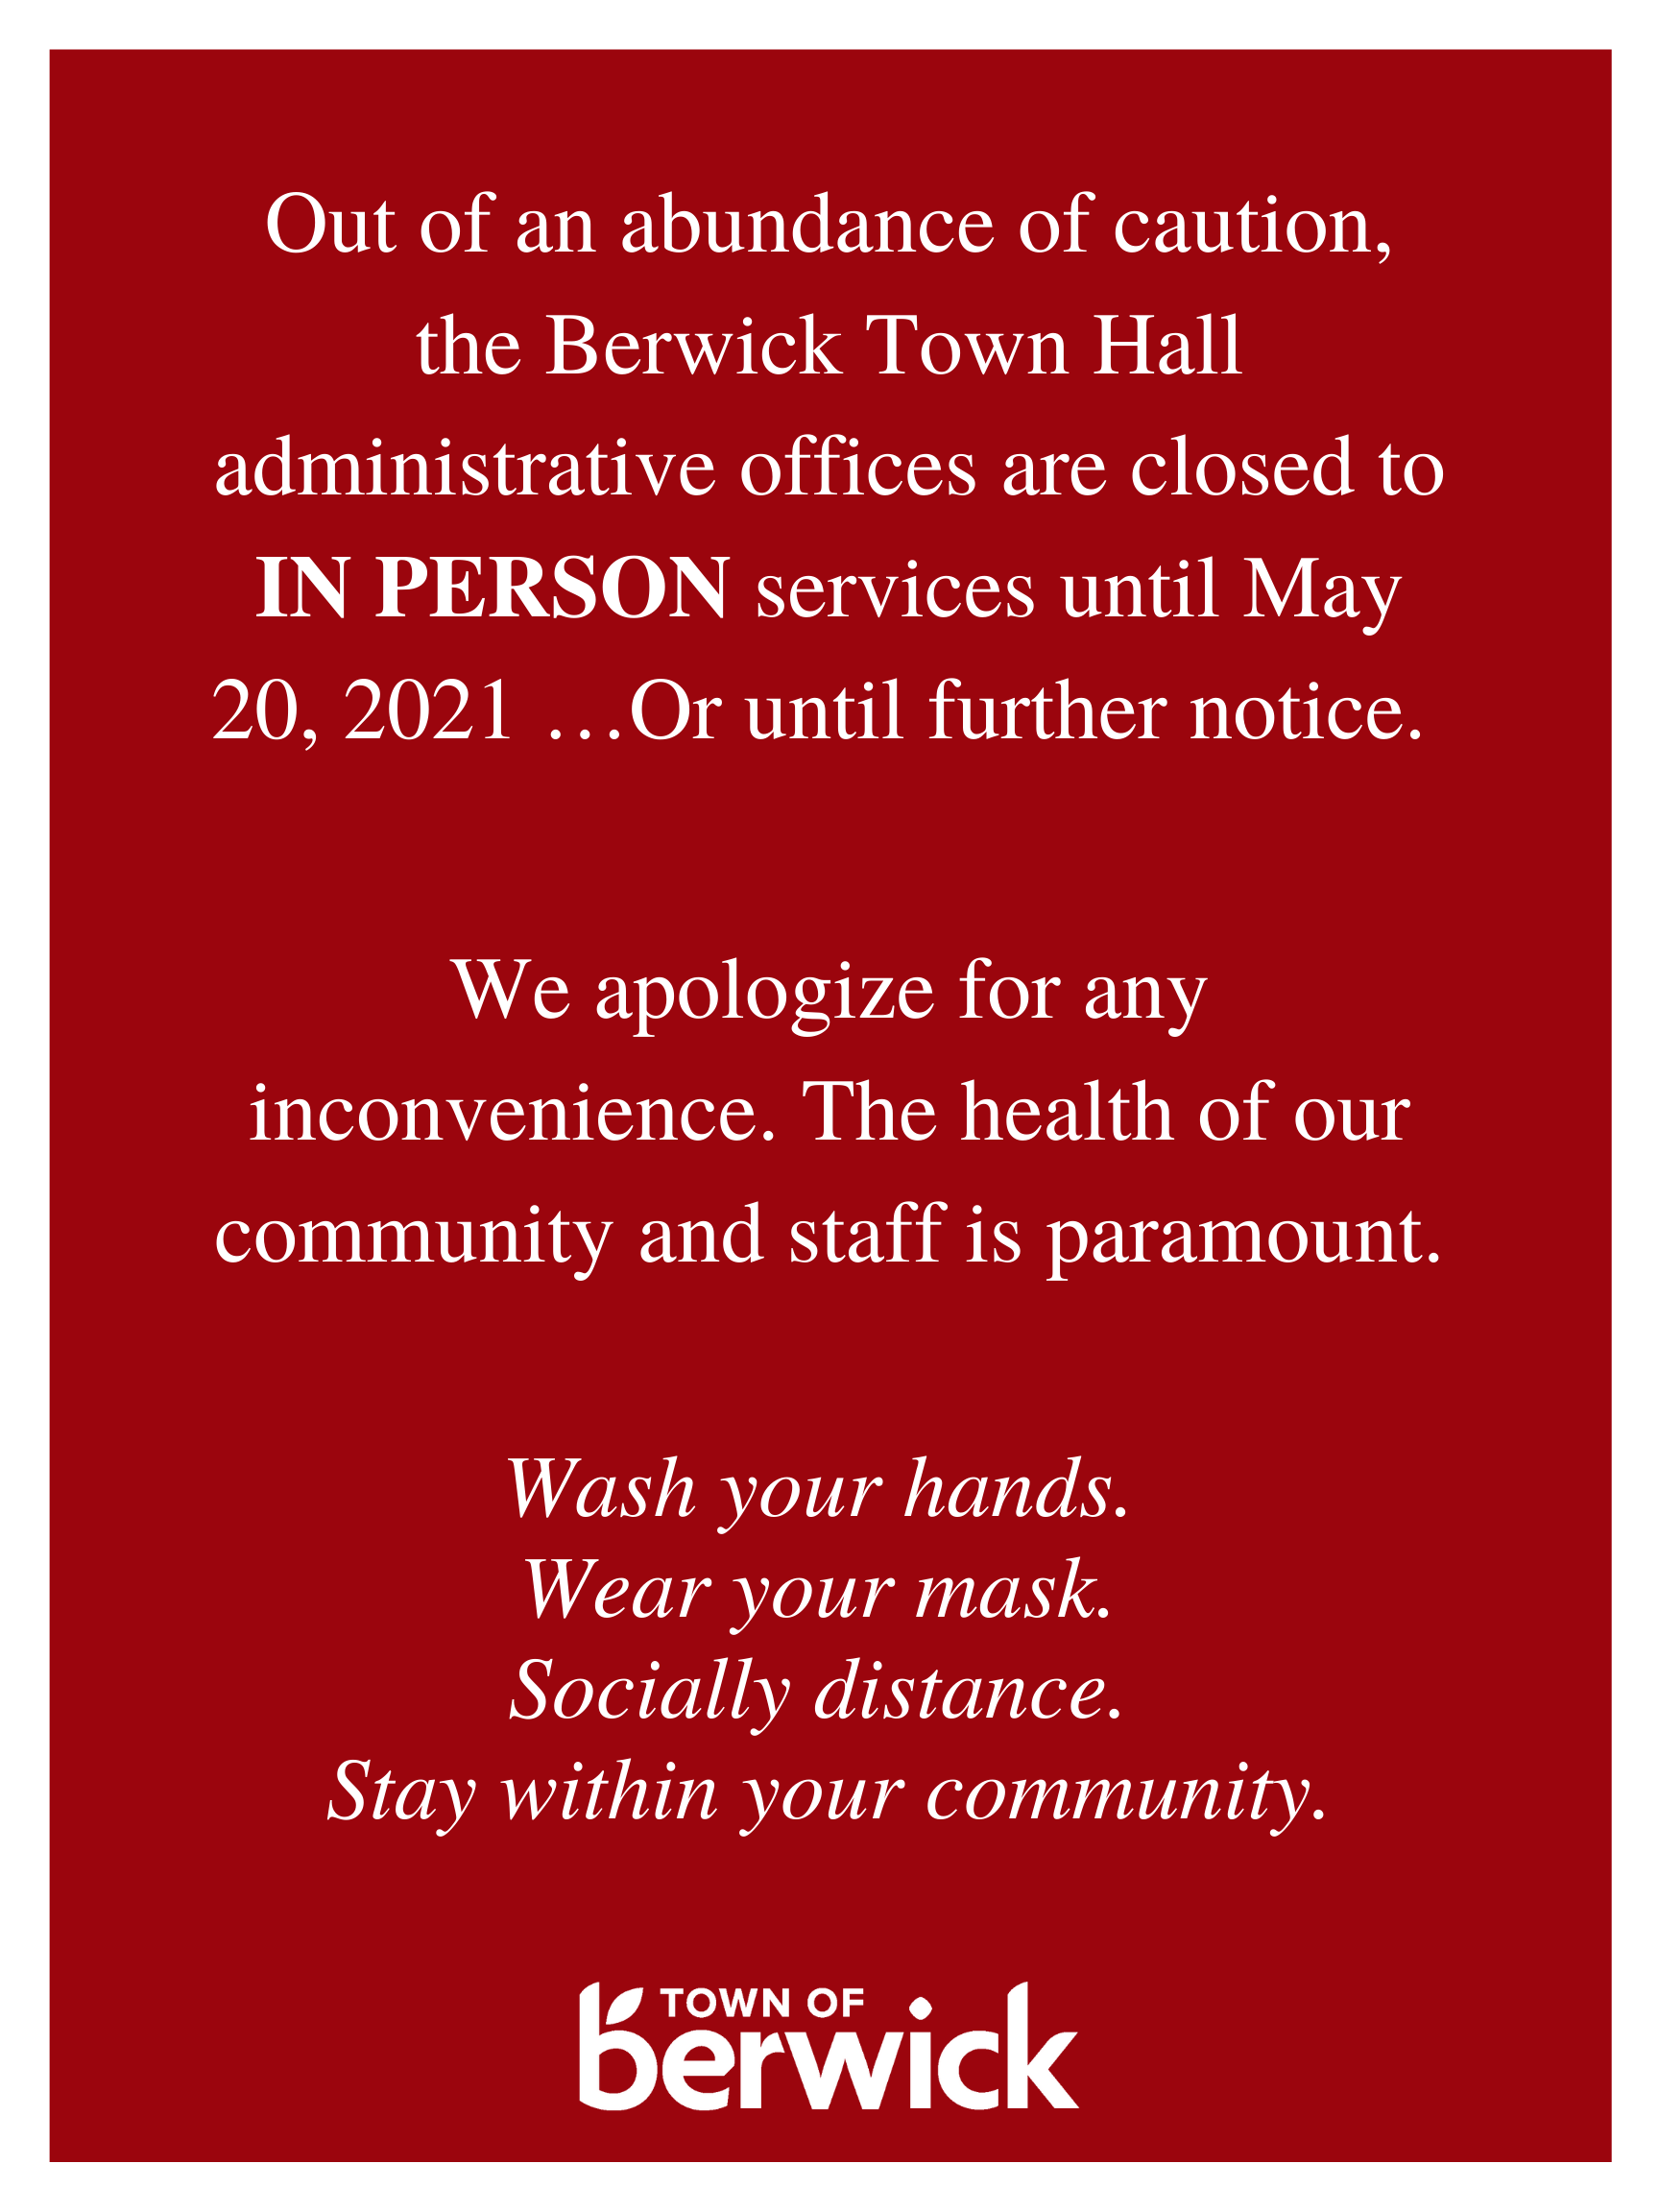 Out of an abundance of caution The Berwick Town Hall administrative offices are closed to IN PERSON services until May 20 2021 Or until further notice. 1